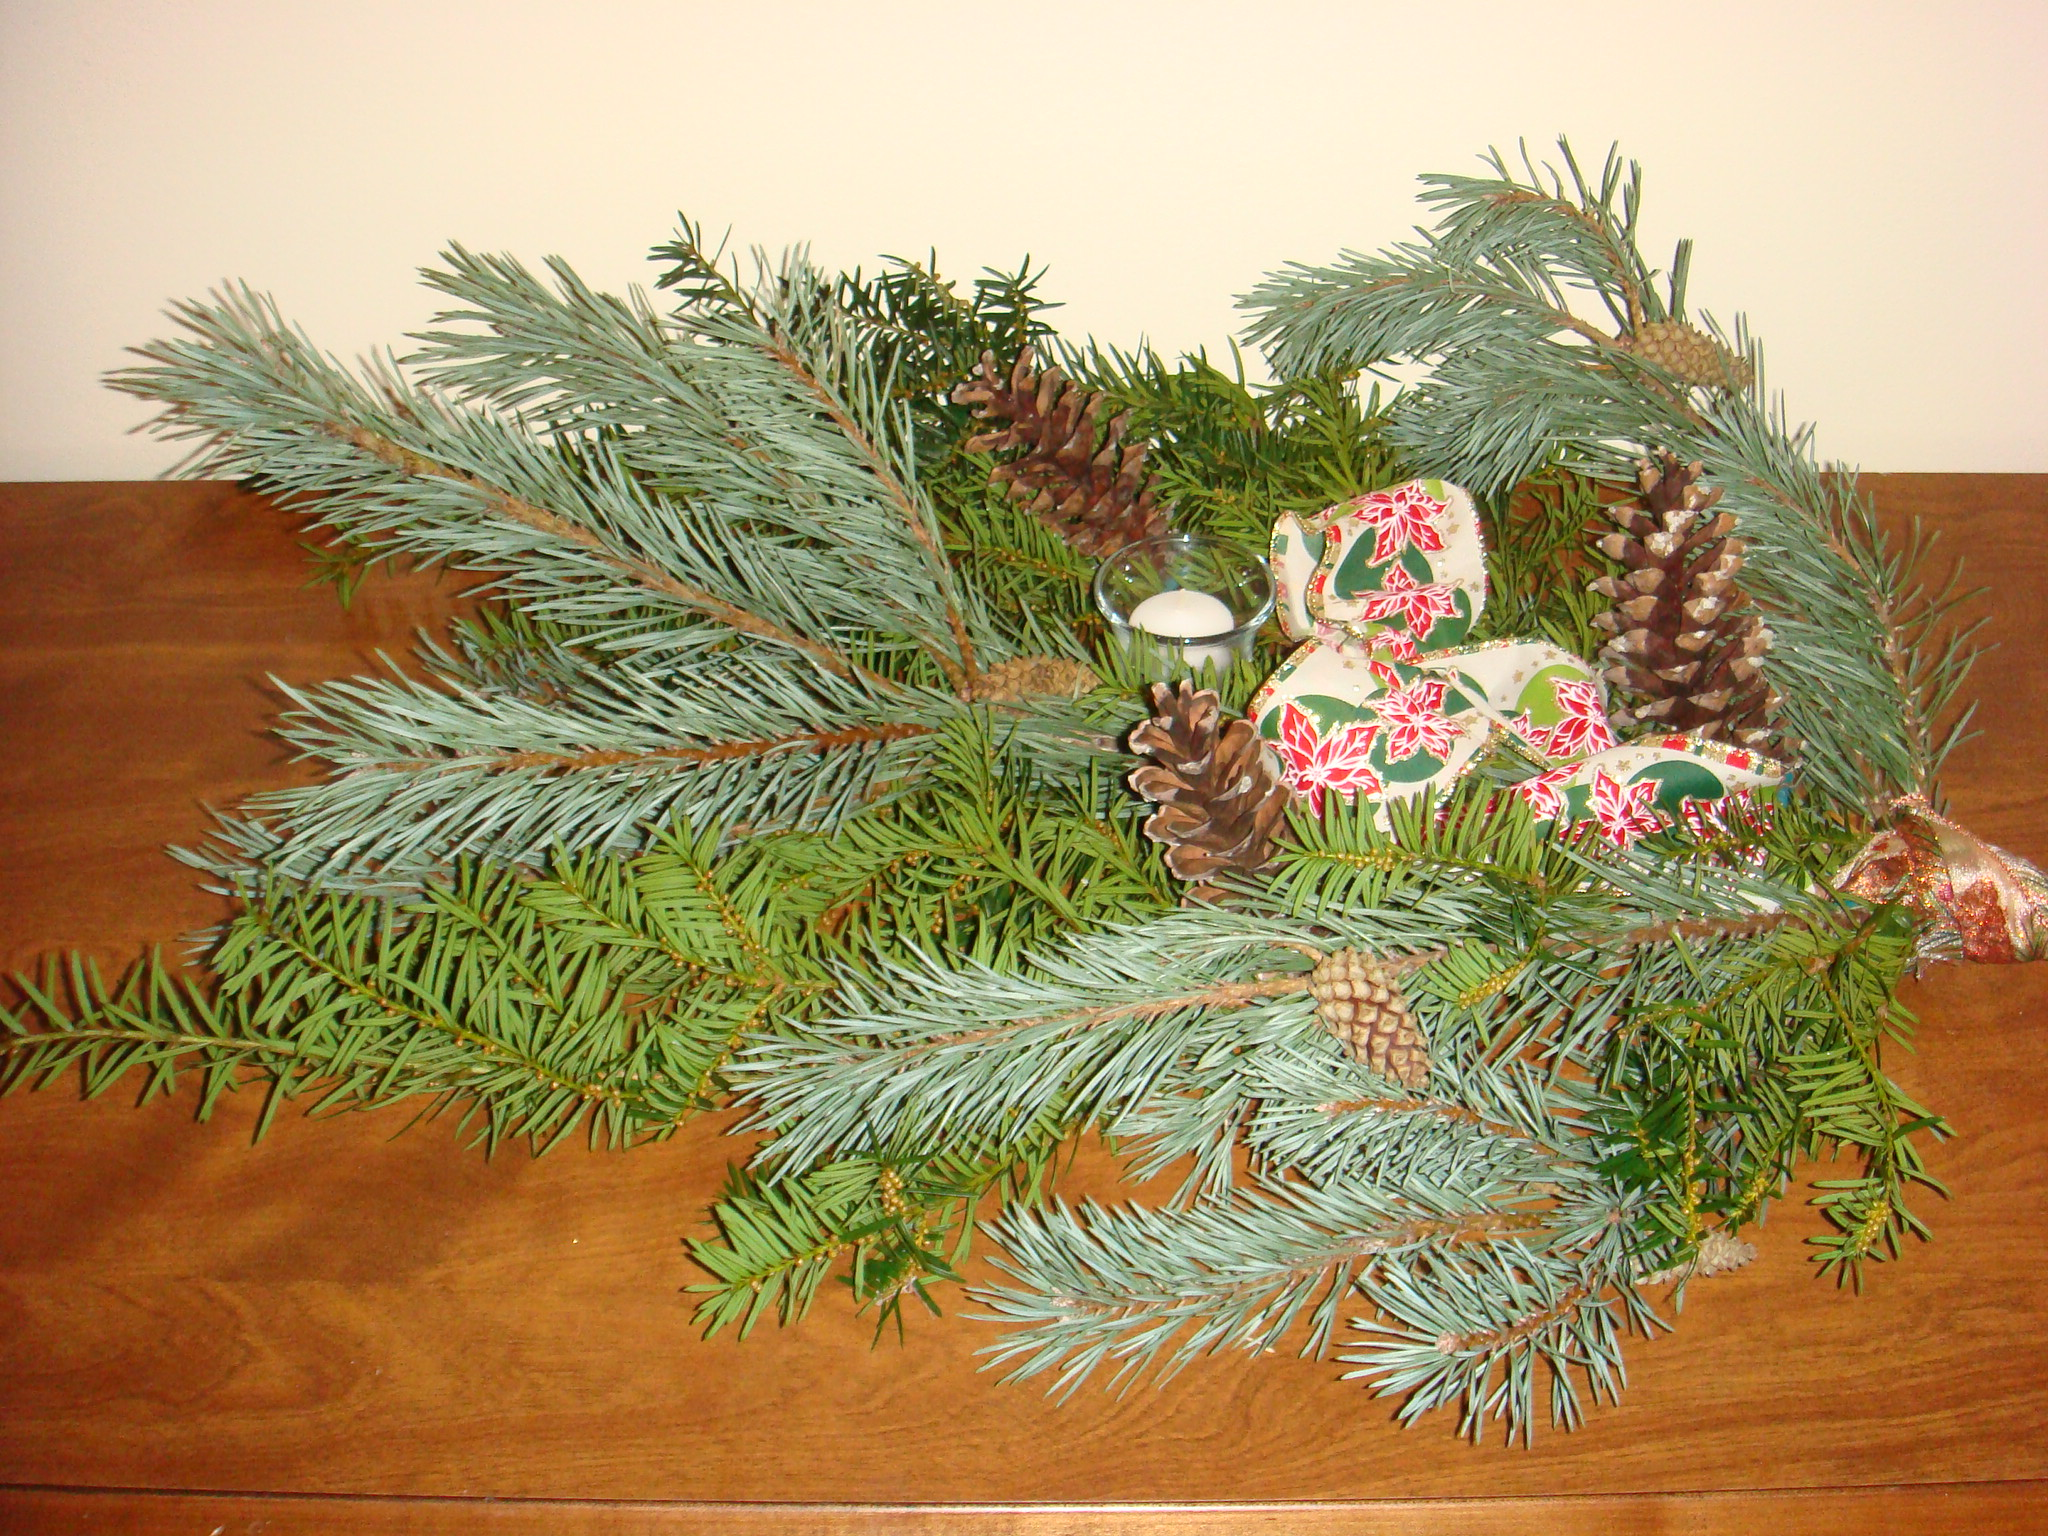 Pine Branches For Decoration Handy Man Crafty Woman Wicked Simple Christmas Decorations